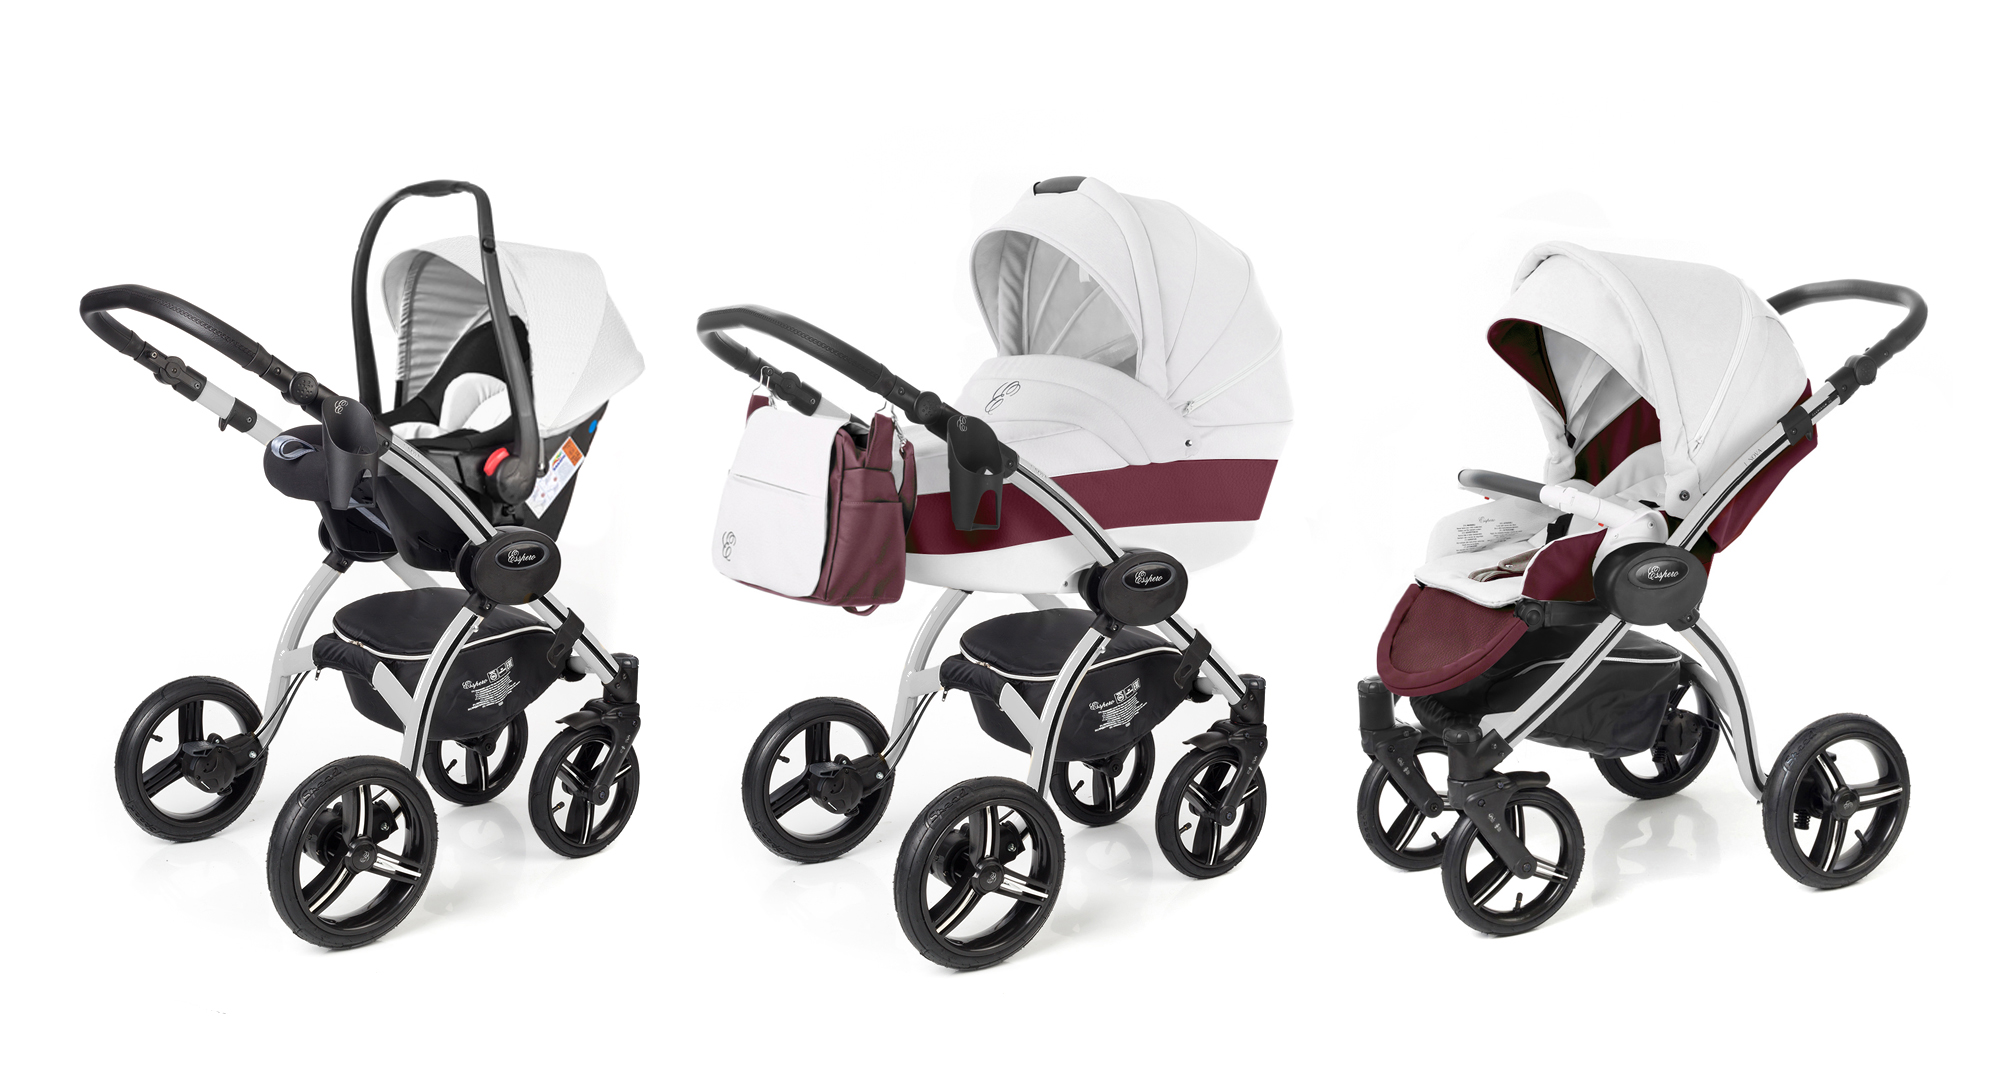 Коляска 3 в 1 Esspero Grand I-Nova (шасси Grey) Maroon leatherette